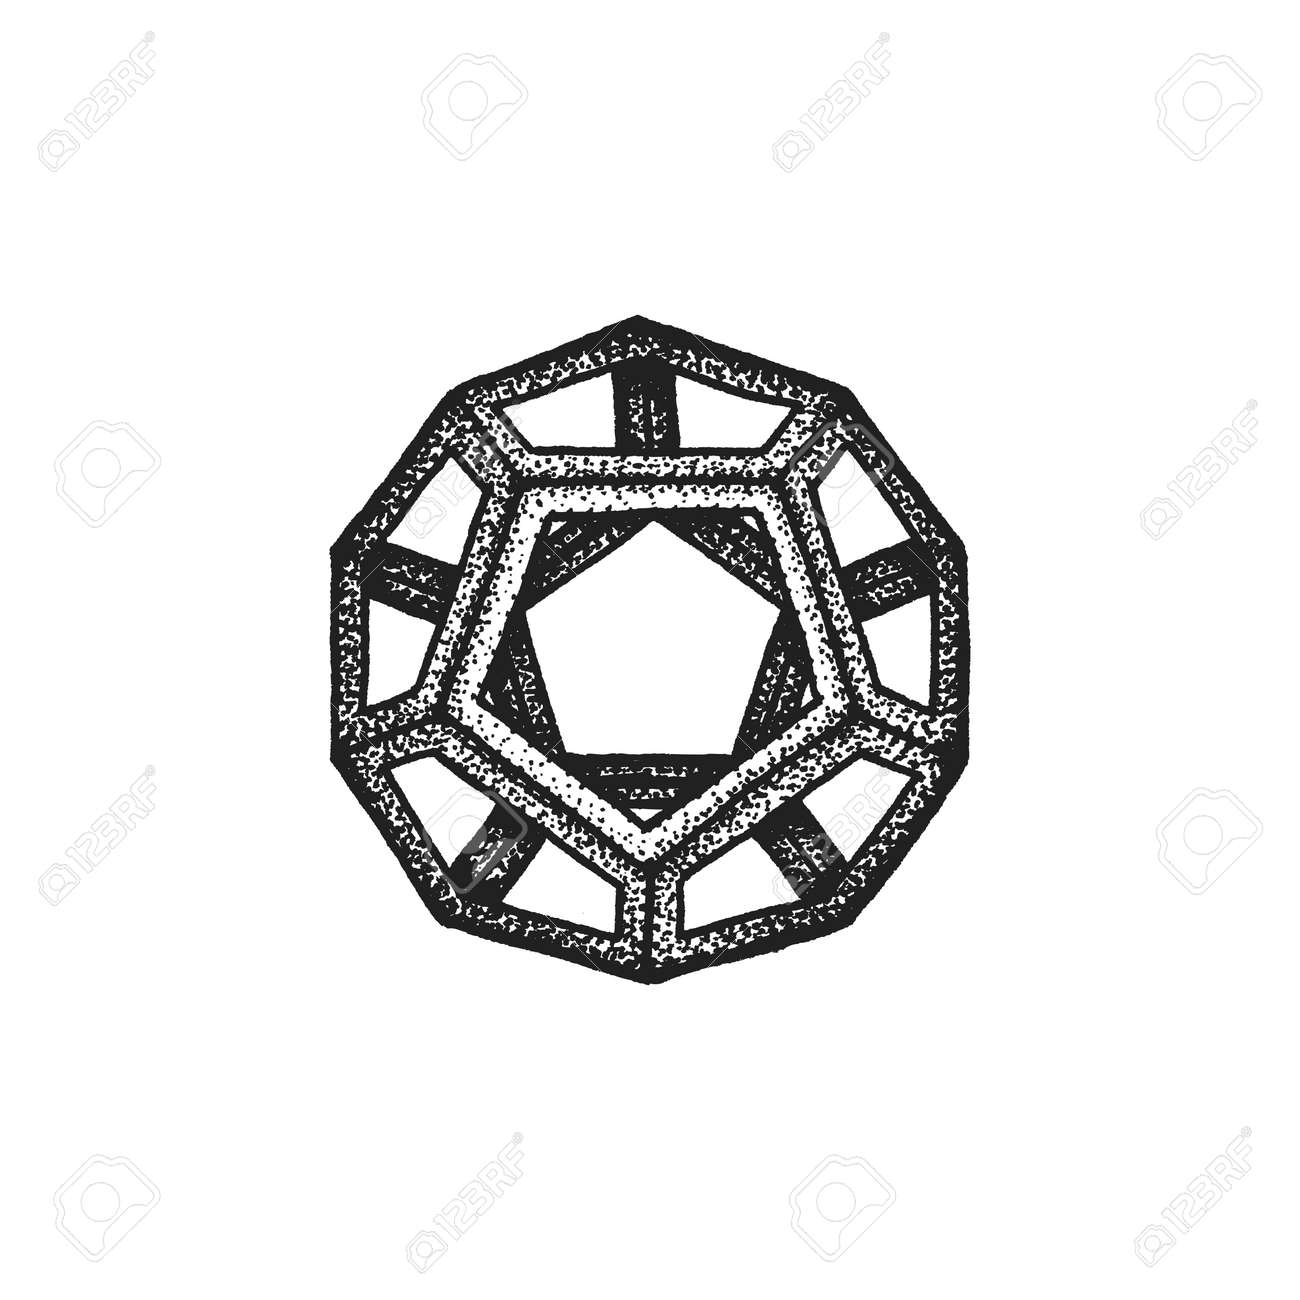 Vector vector black monochrome tattoo dotted art style decoration element geometric dodecahedron polyhedron illustration isolated white background